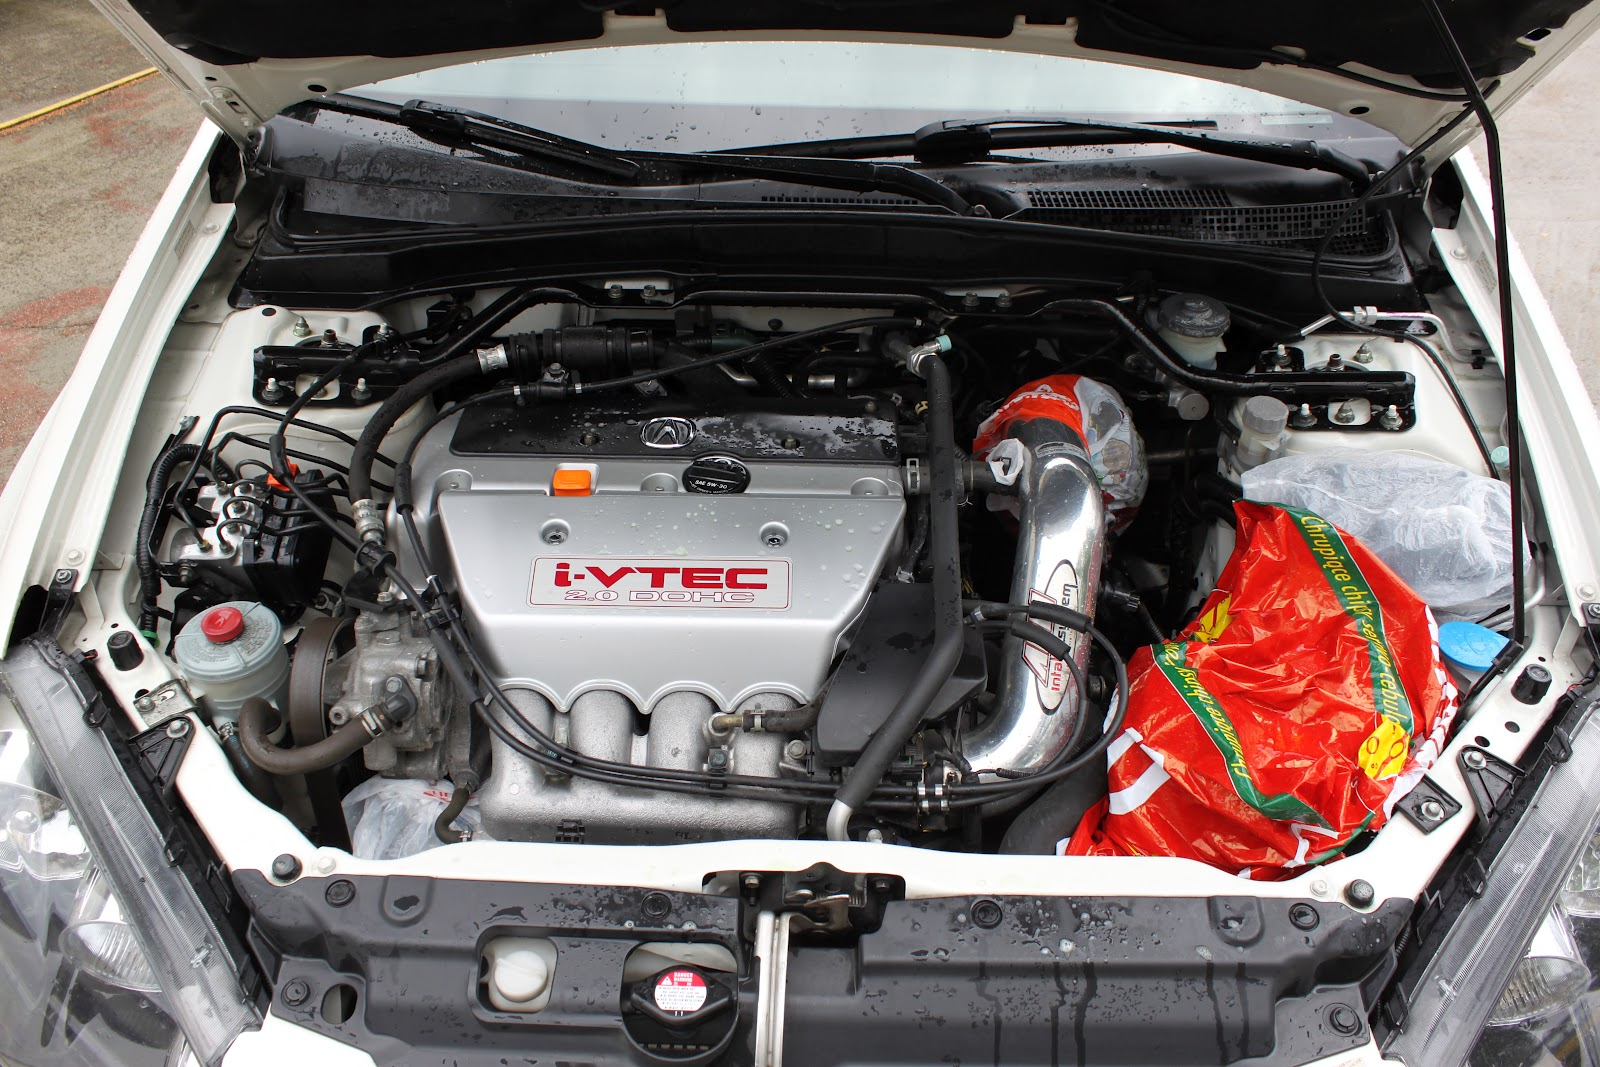 acura rsx type s honda integra dc5 how to clean engine bay in [ 1600 x 1067 Pixel ]